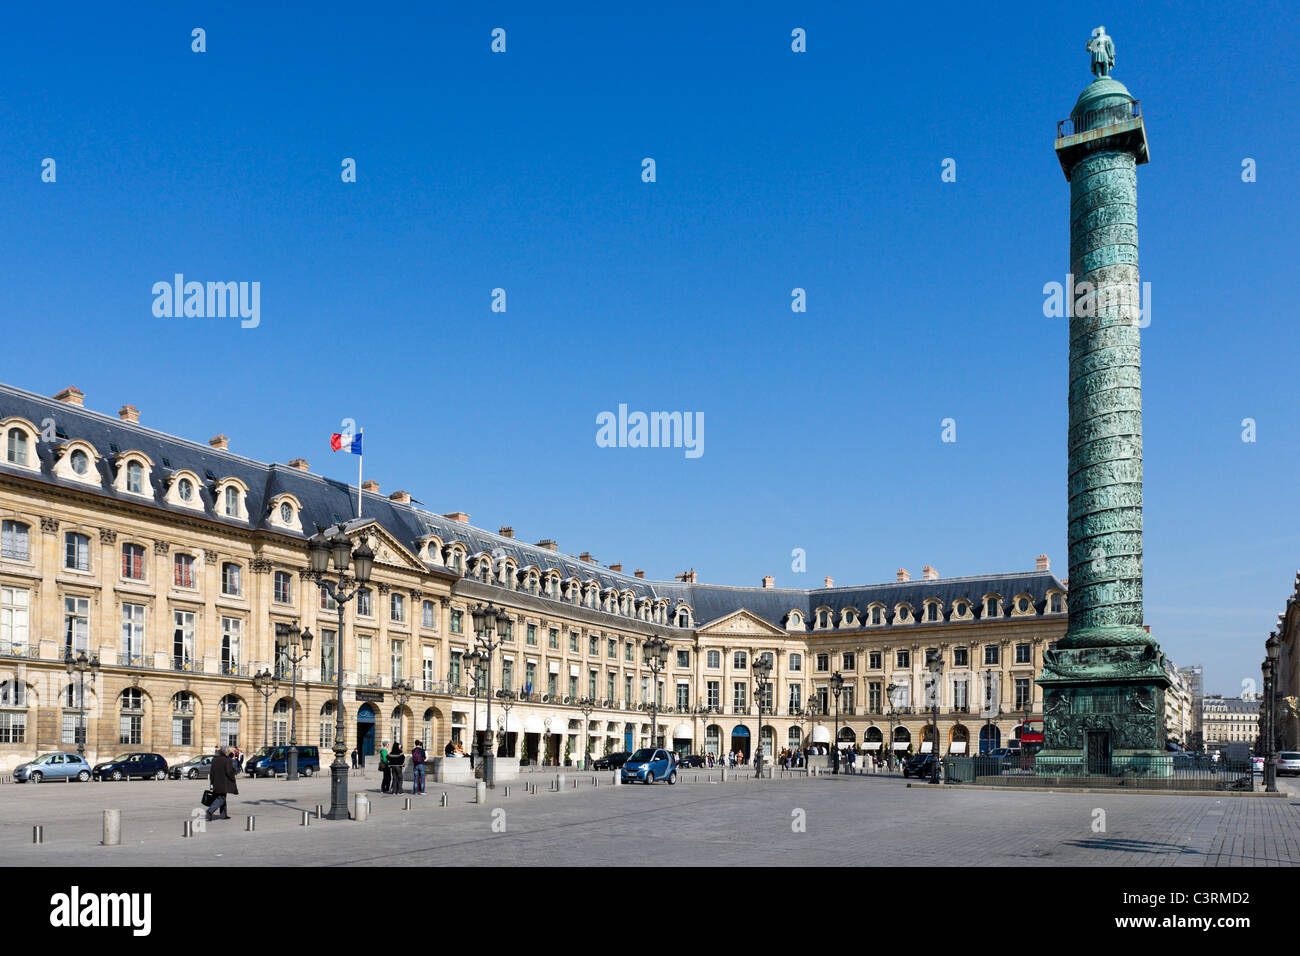 The Ritz Hotel, Palace of Justice and column of Napoleon, Place Vendome, Paris, France - Stock Image